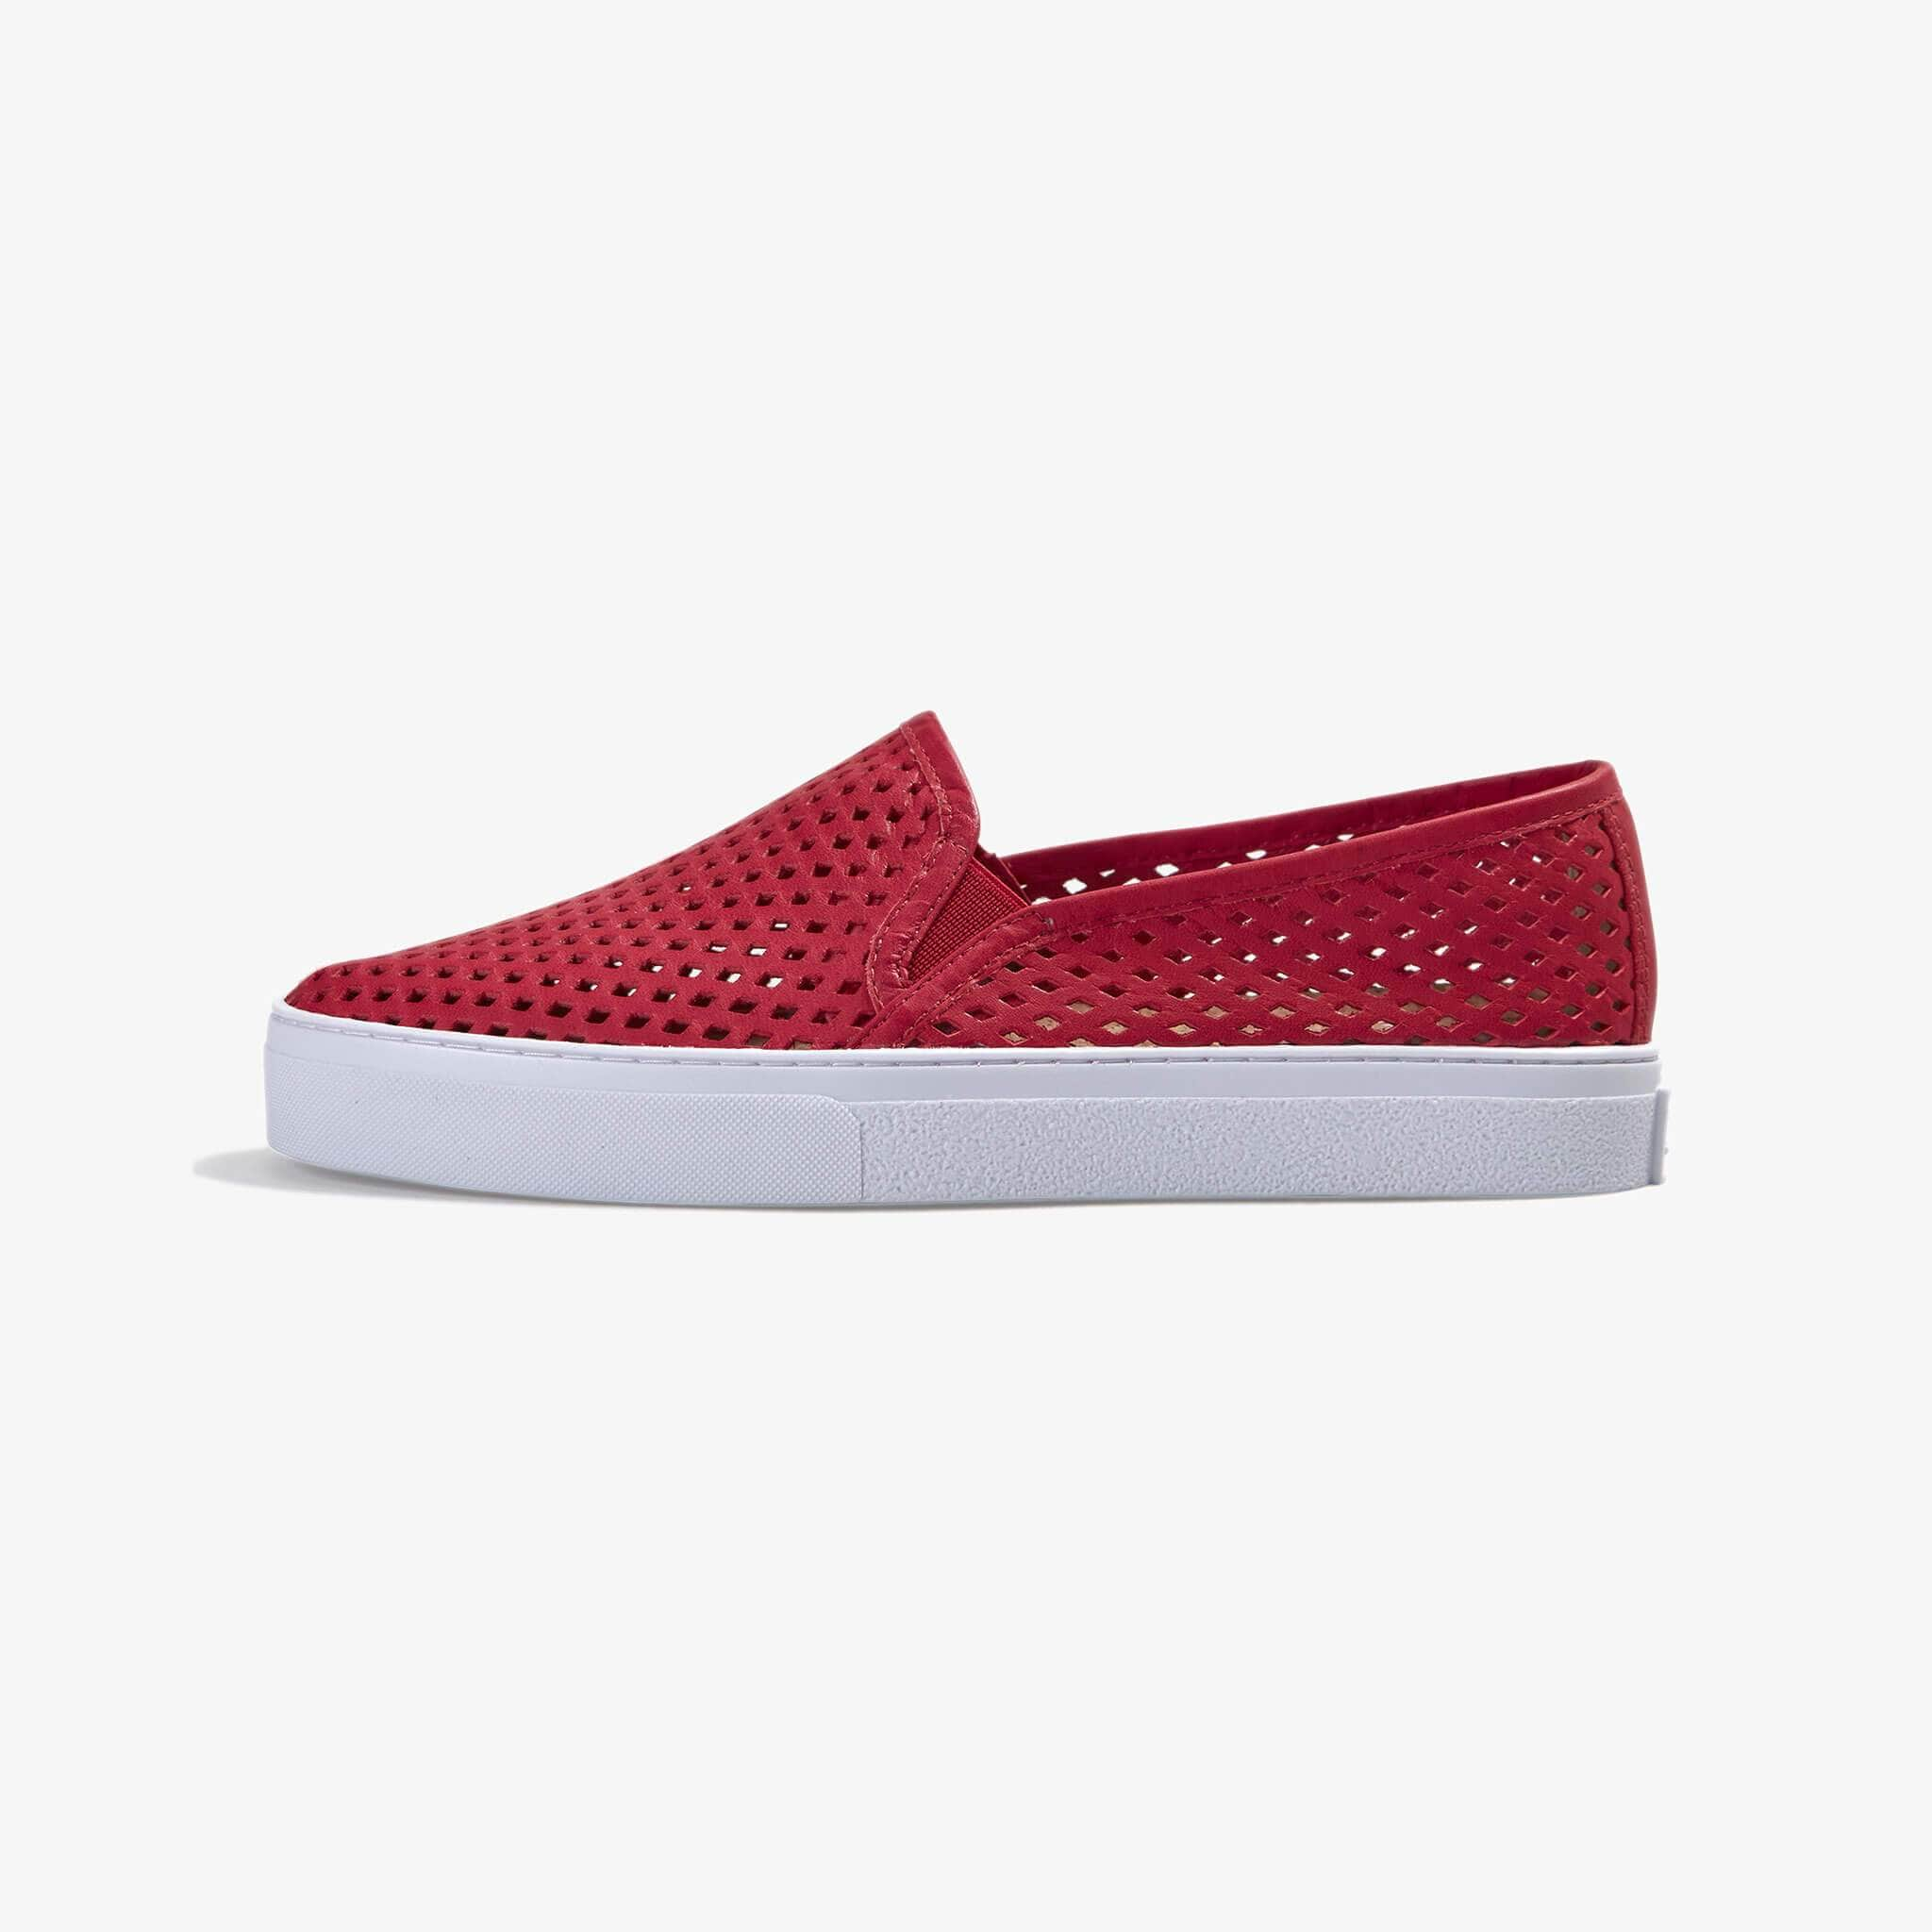 Jibs Classic True Red Slip On Sneaker-Shoe Side